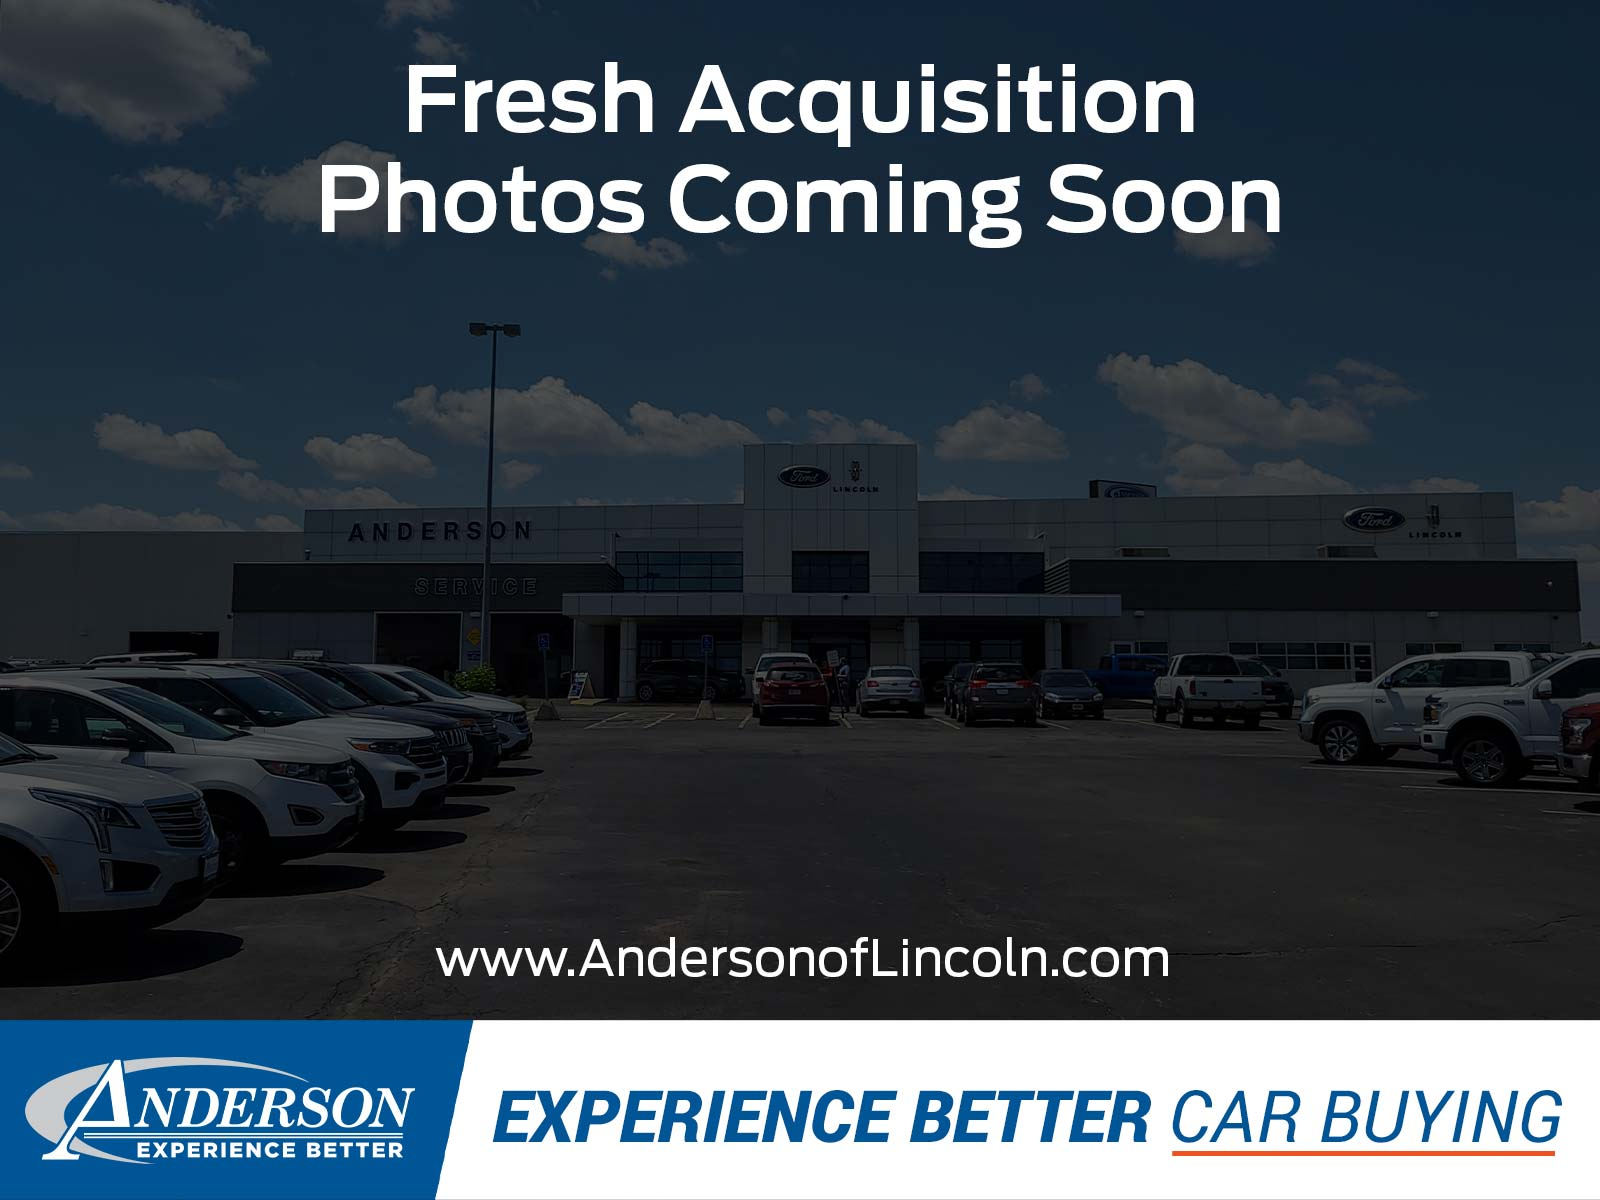 Used 2012 Ford Fiesta Se Hatchback for sale in Lincoln NE